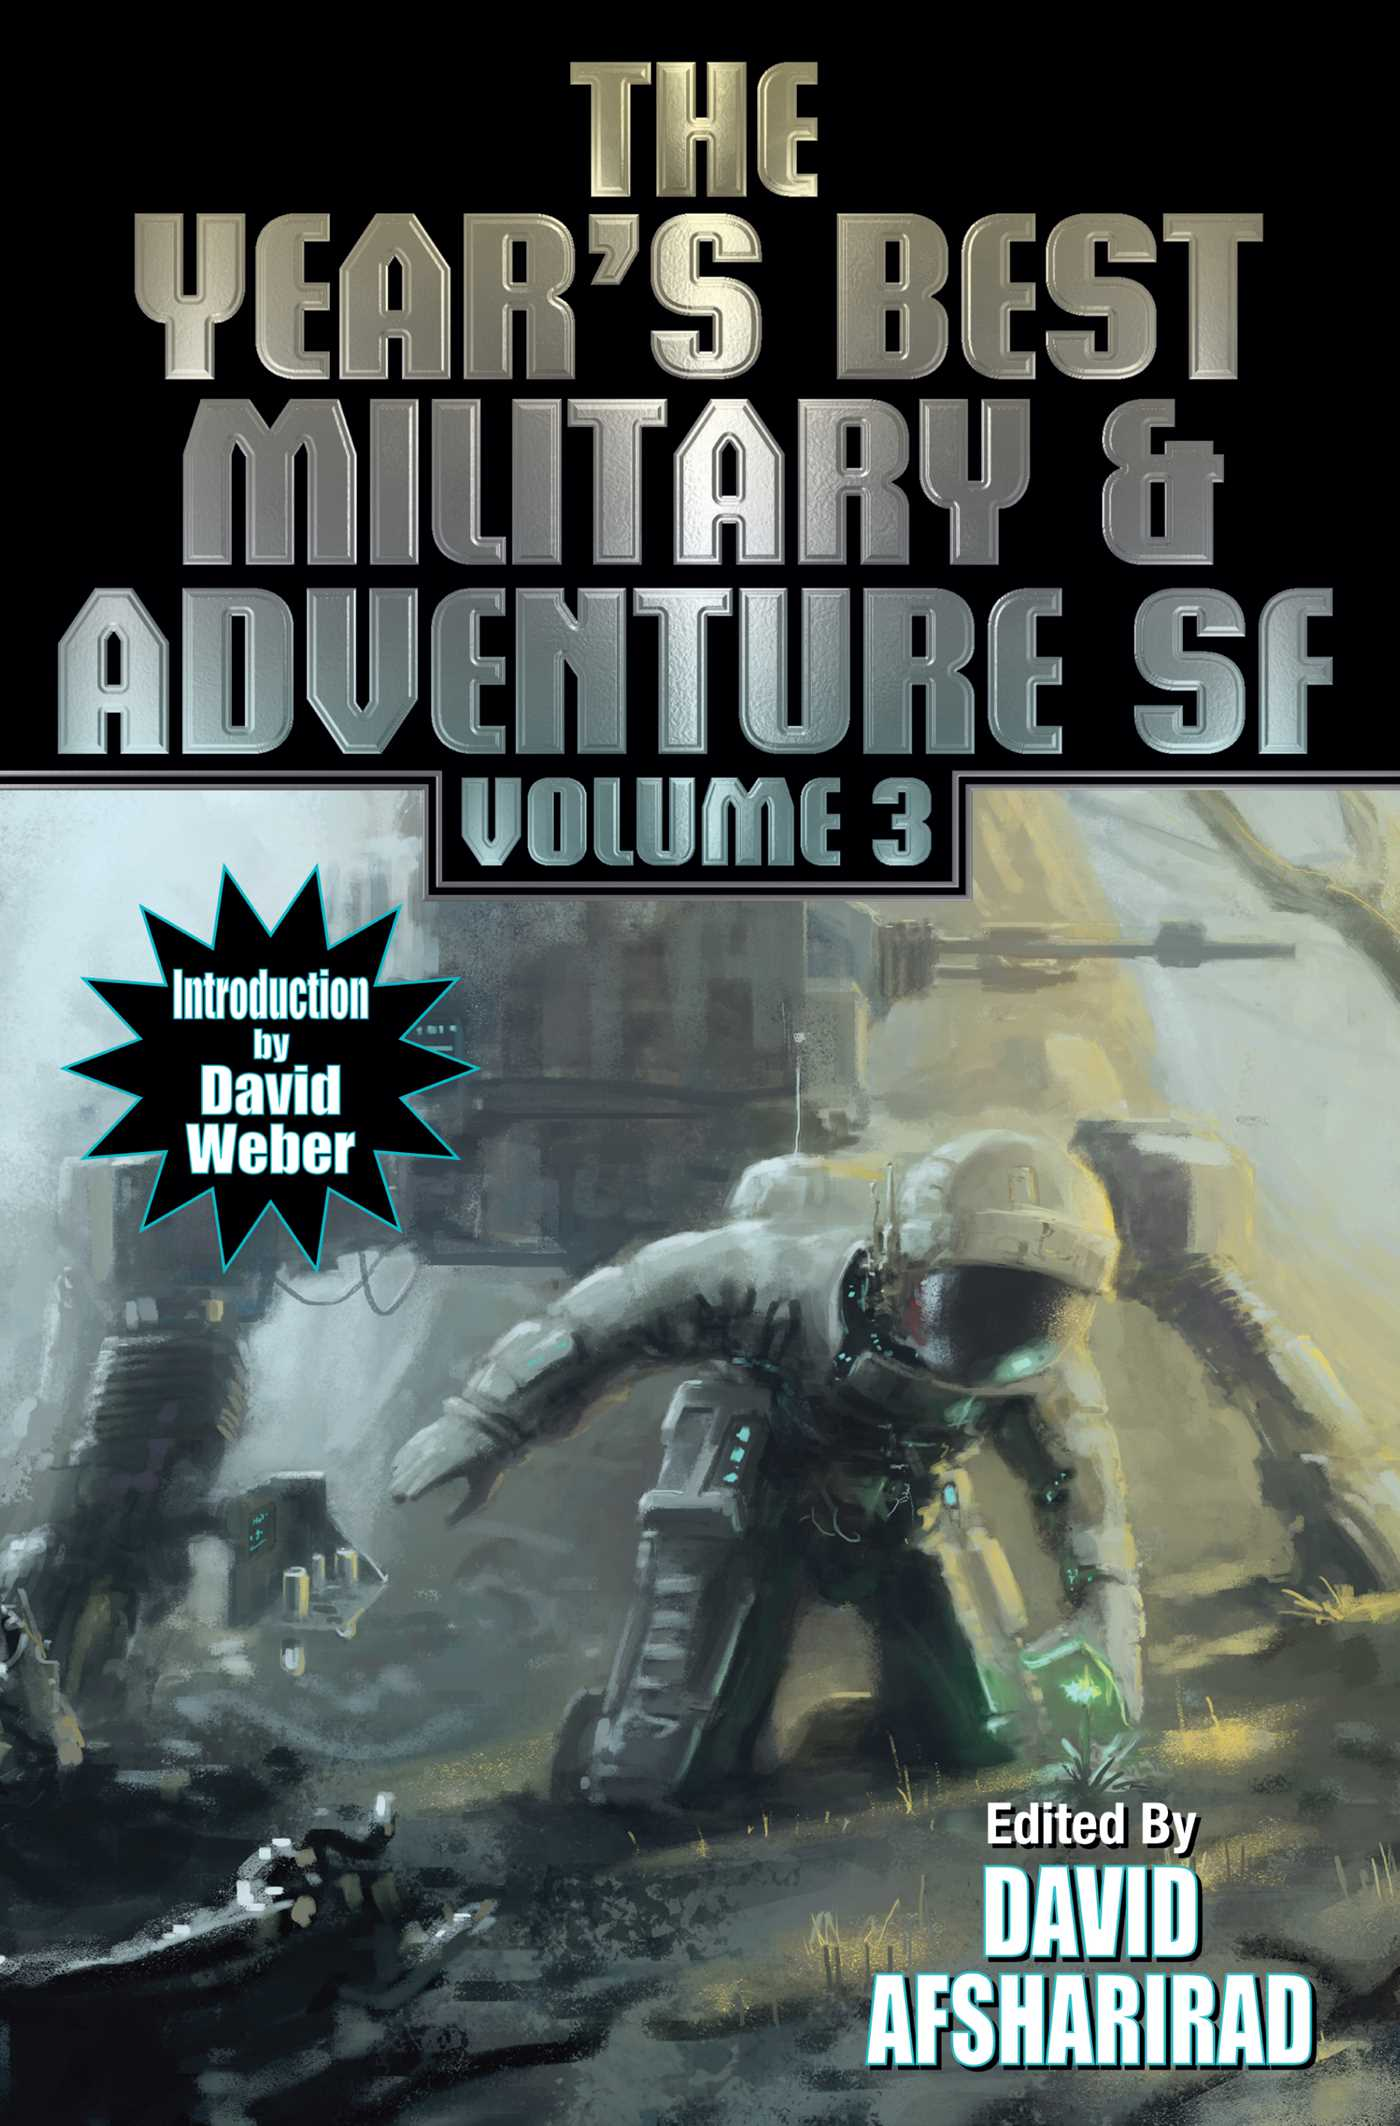 Years best military and adventure sf volume 3 9781481482684 hr